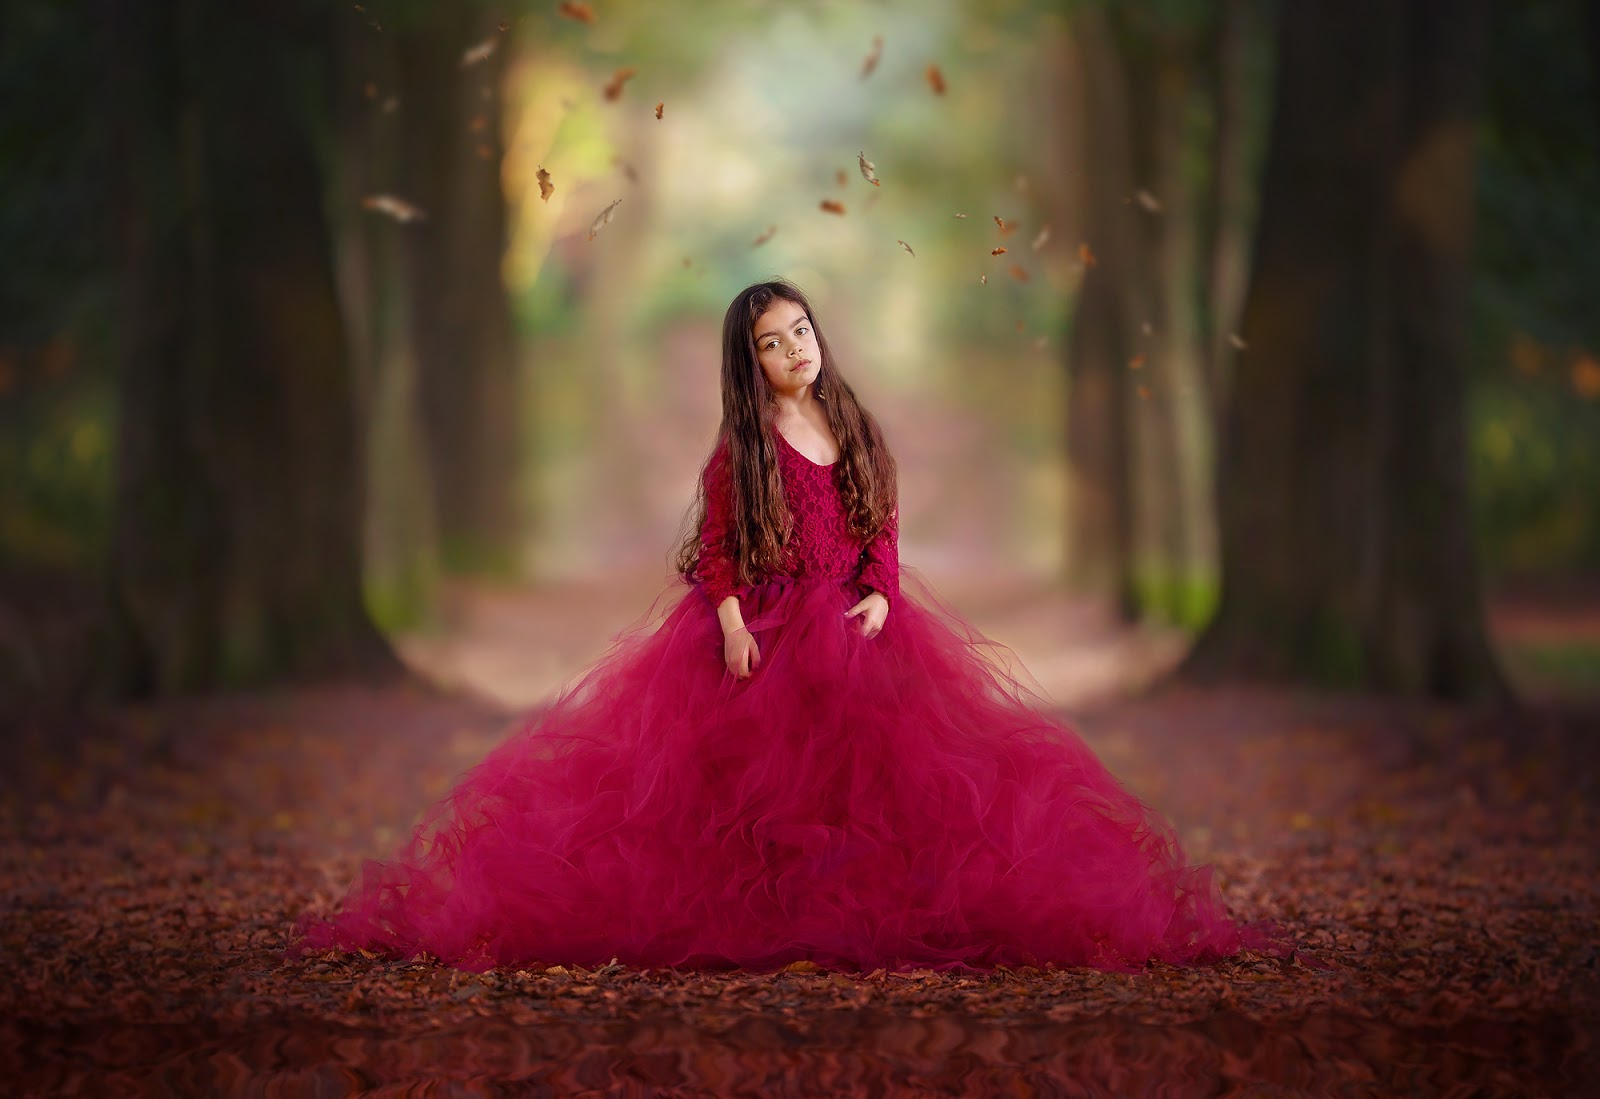 Canon 200mm portrait of a young girl in a beautiful red dress standing in an autumn forest with falling leaves above her head by Willie Kers